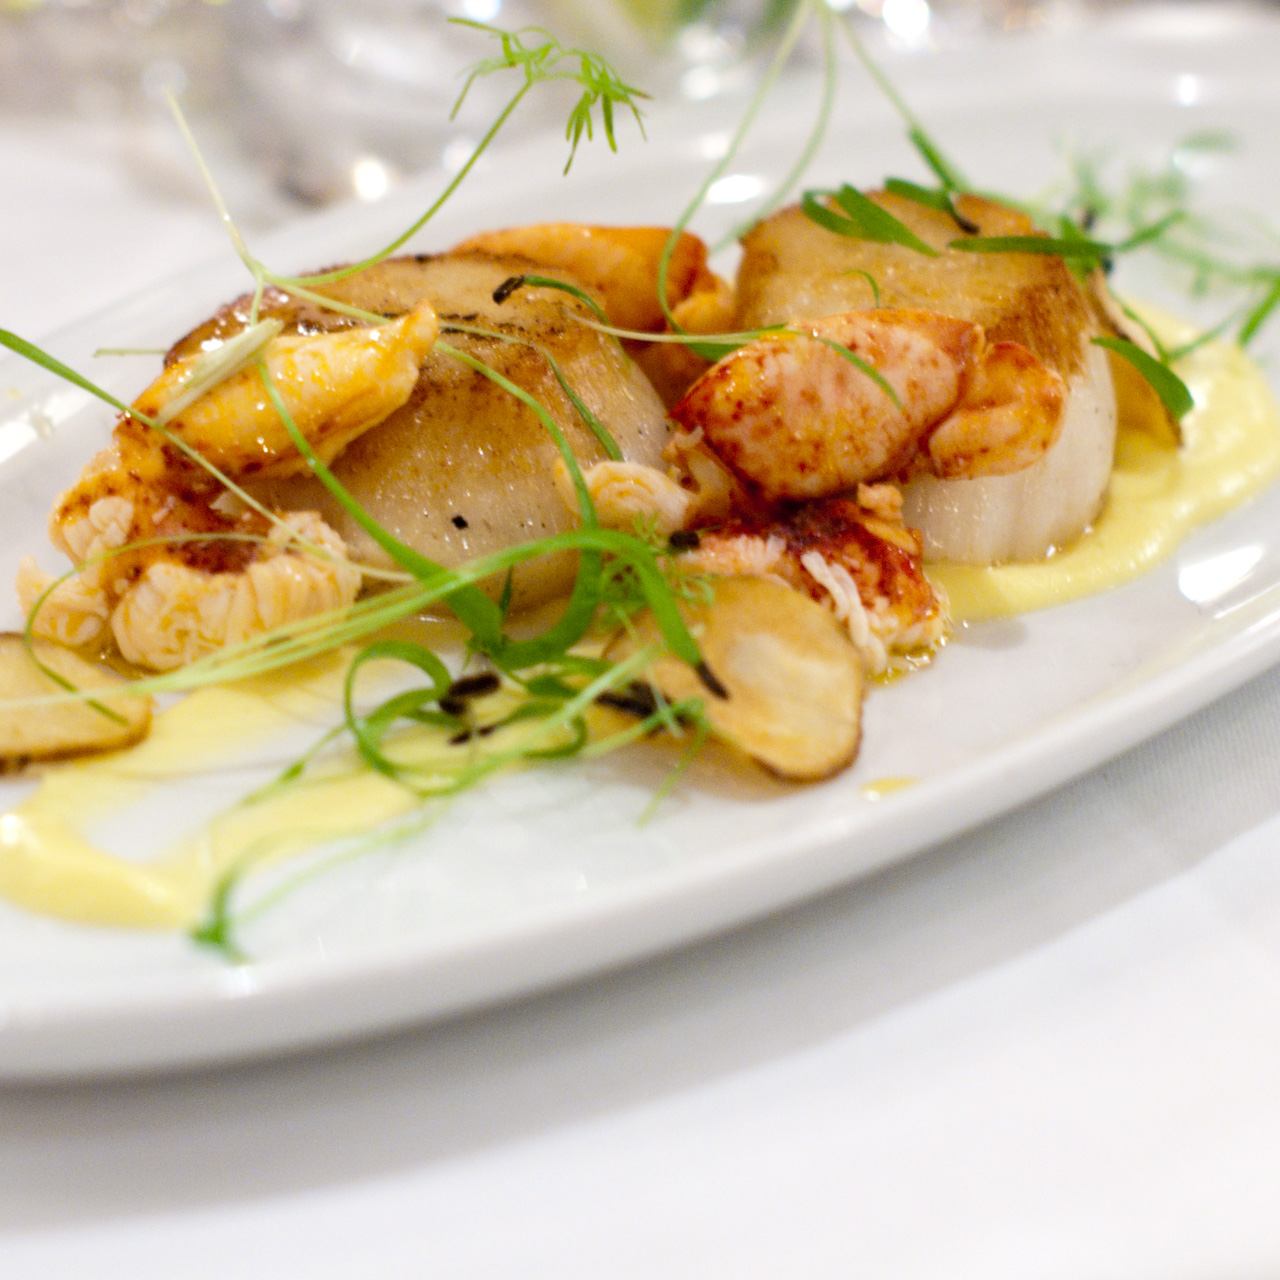 Scallops and Lobster Appetizer